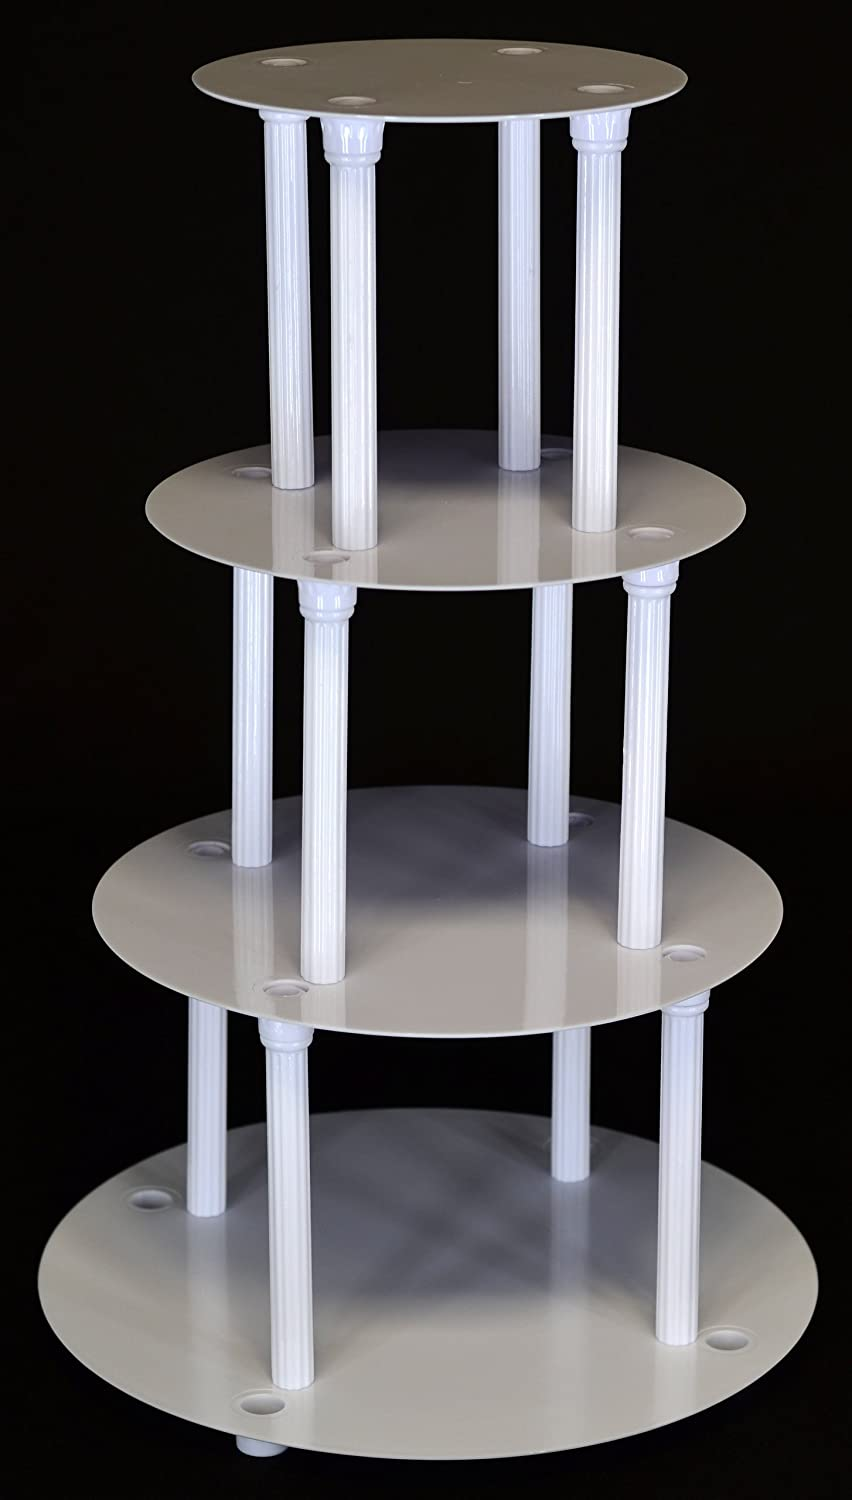 Amazing Amazon.com | 4 TIER CAKE SEPARATOR PLATE AND PILLAR SET (STYLE 1101): Cake  Stands: Accent Plates